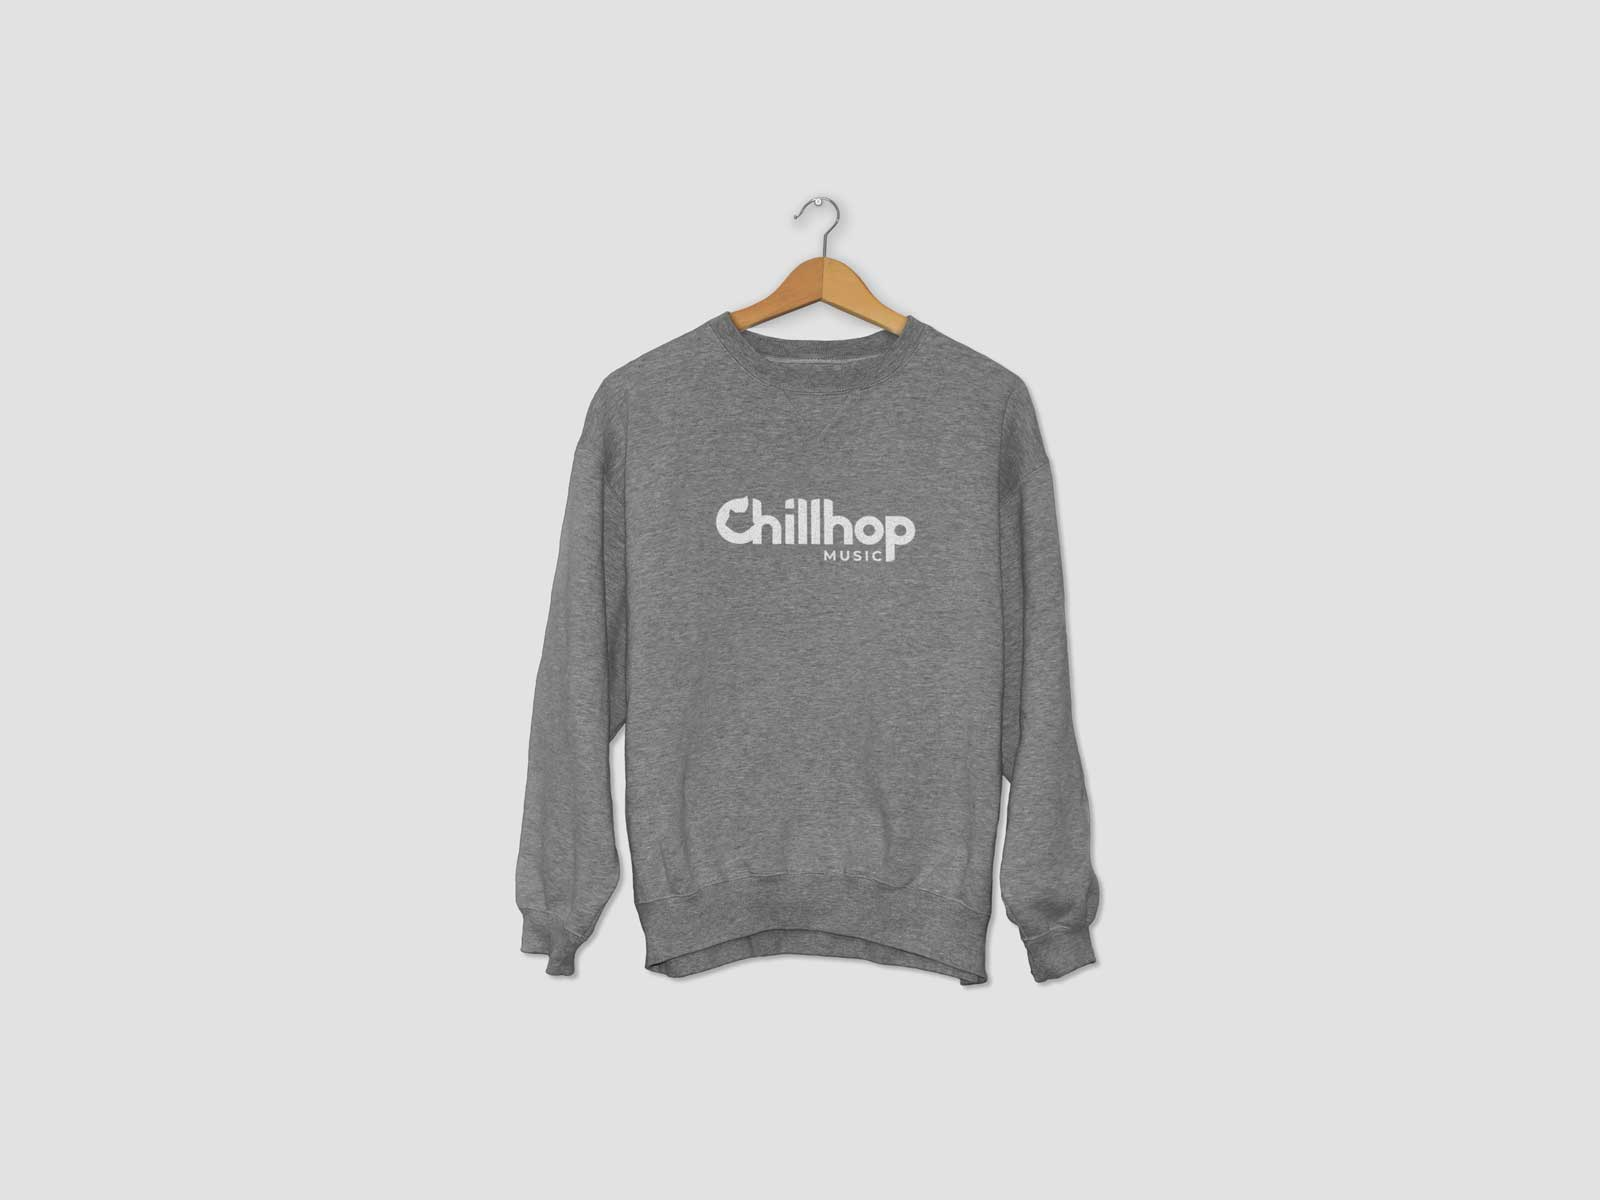 chillhop music new logo jumper shirt branding